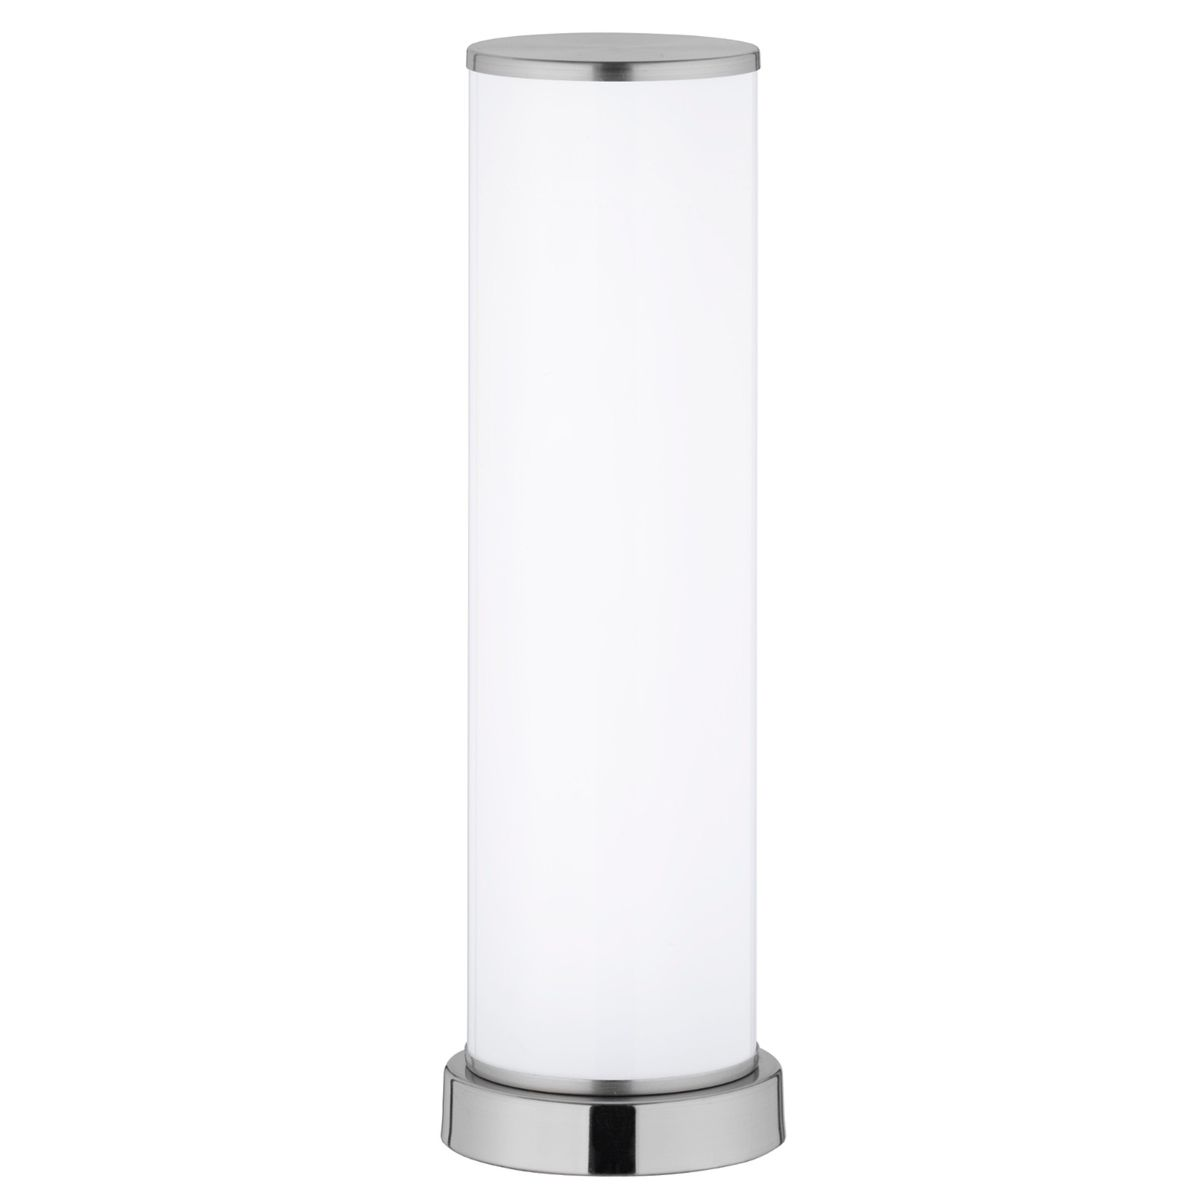 Action Glenn Table Lamp - Nickel Matt Finished with RGB LED